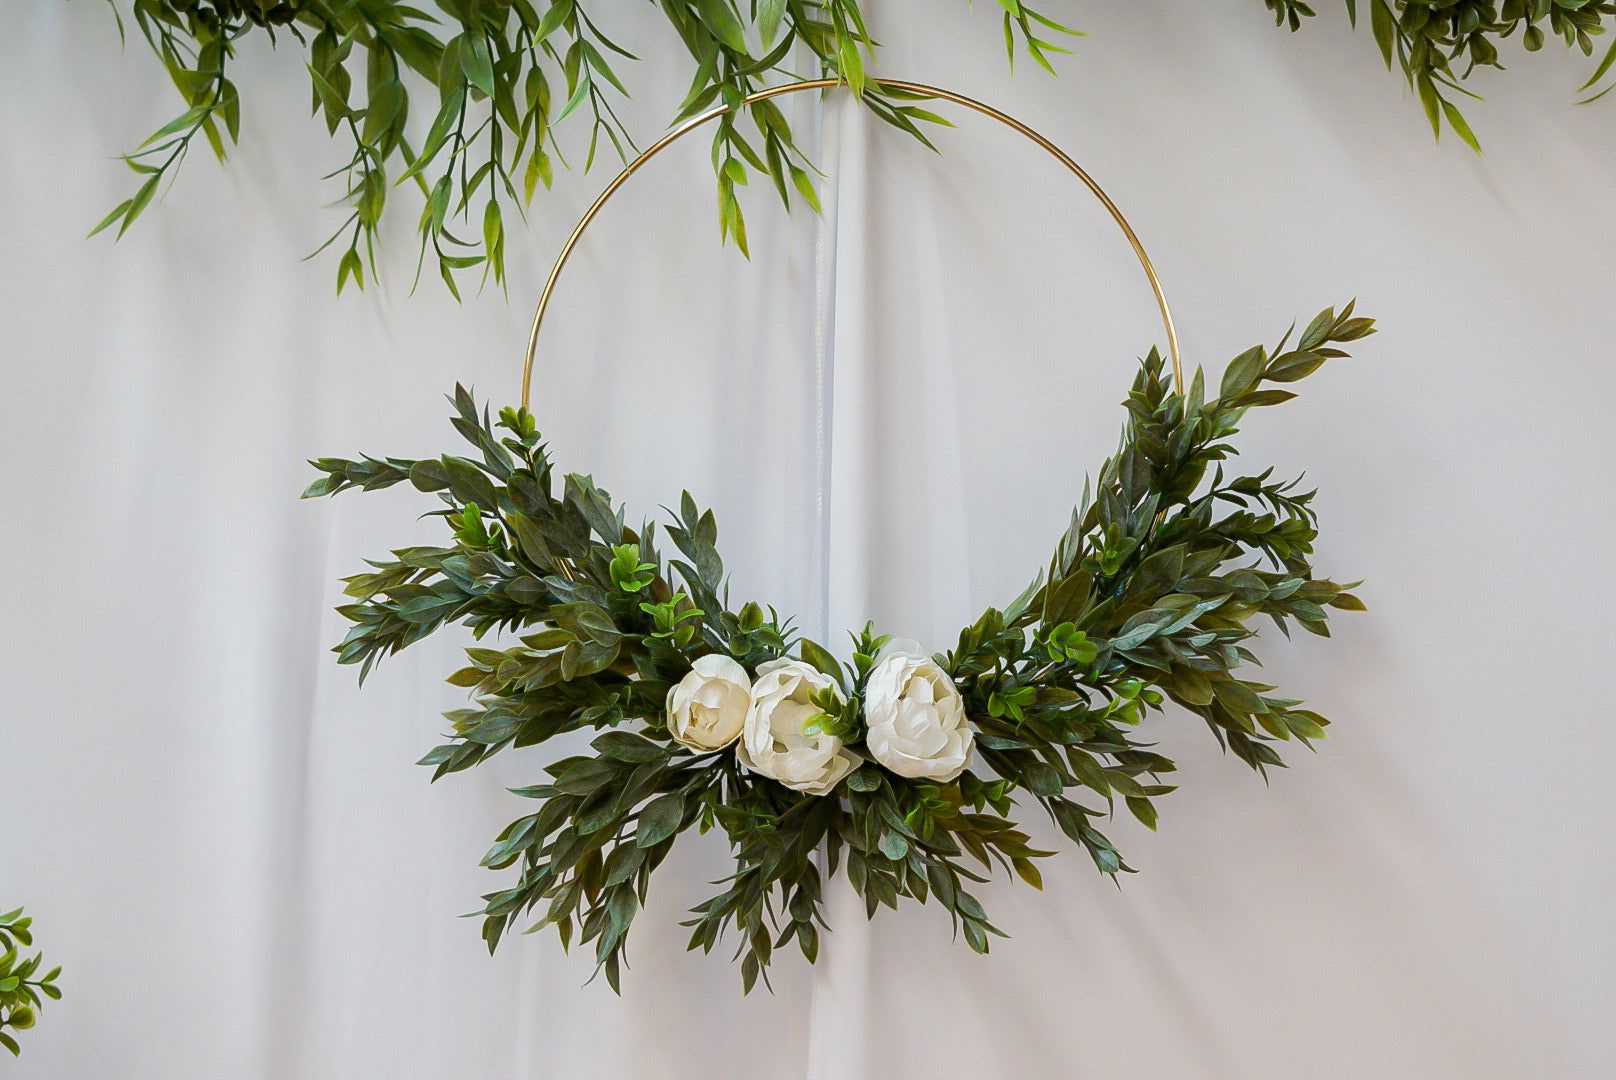 Molly Sue -12 inch Hoop Wreath